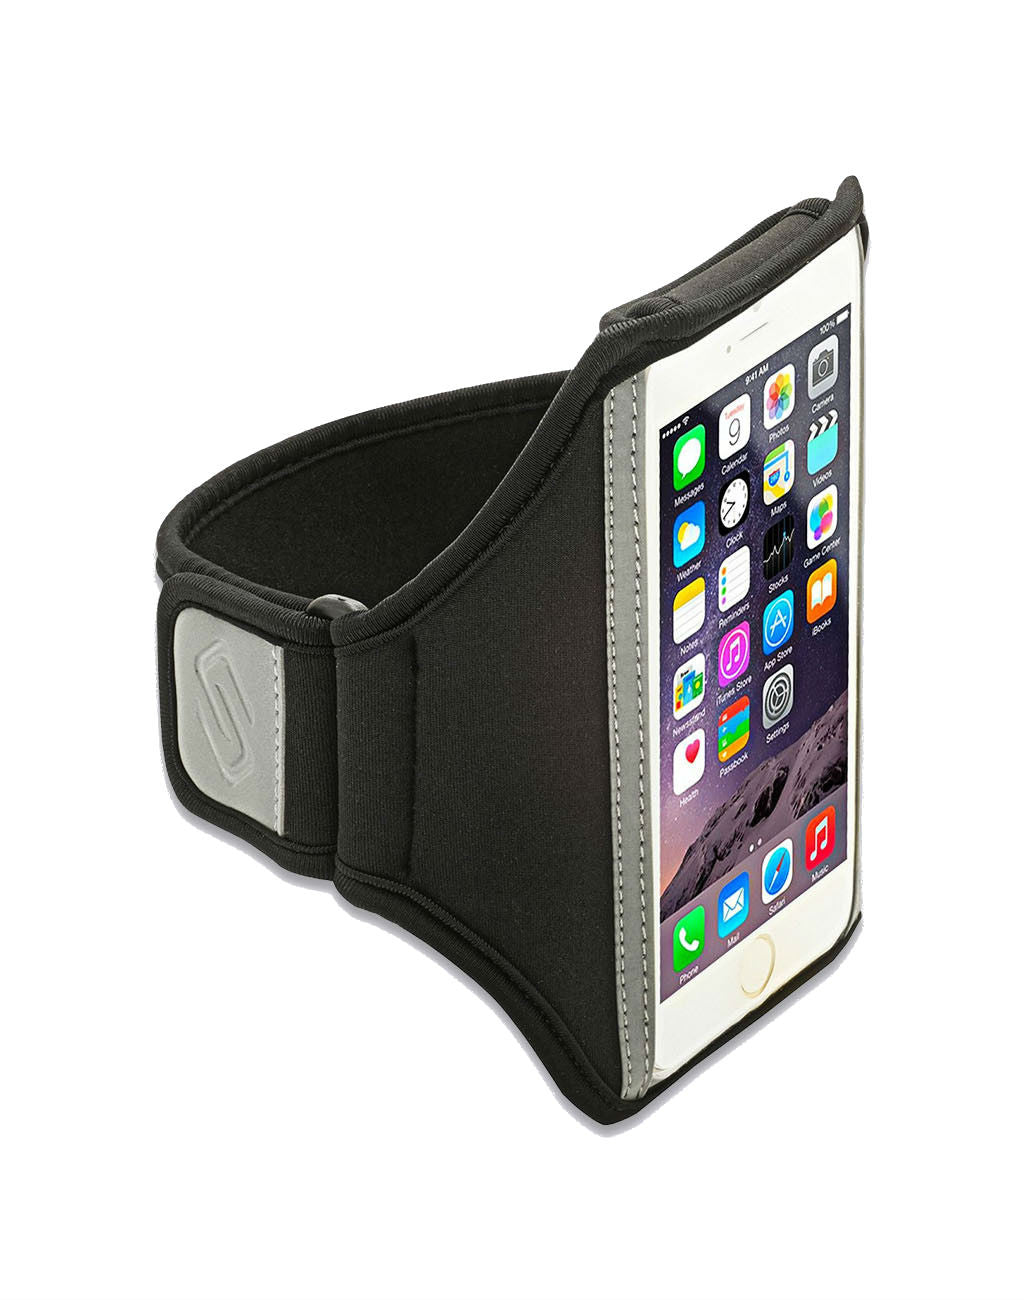 Sporteer Armband for iPhone SE and iPhone 5S, iPhone 5C, and iPhone 5Black_master_image